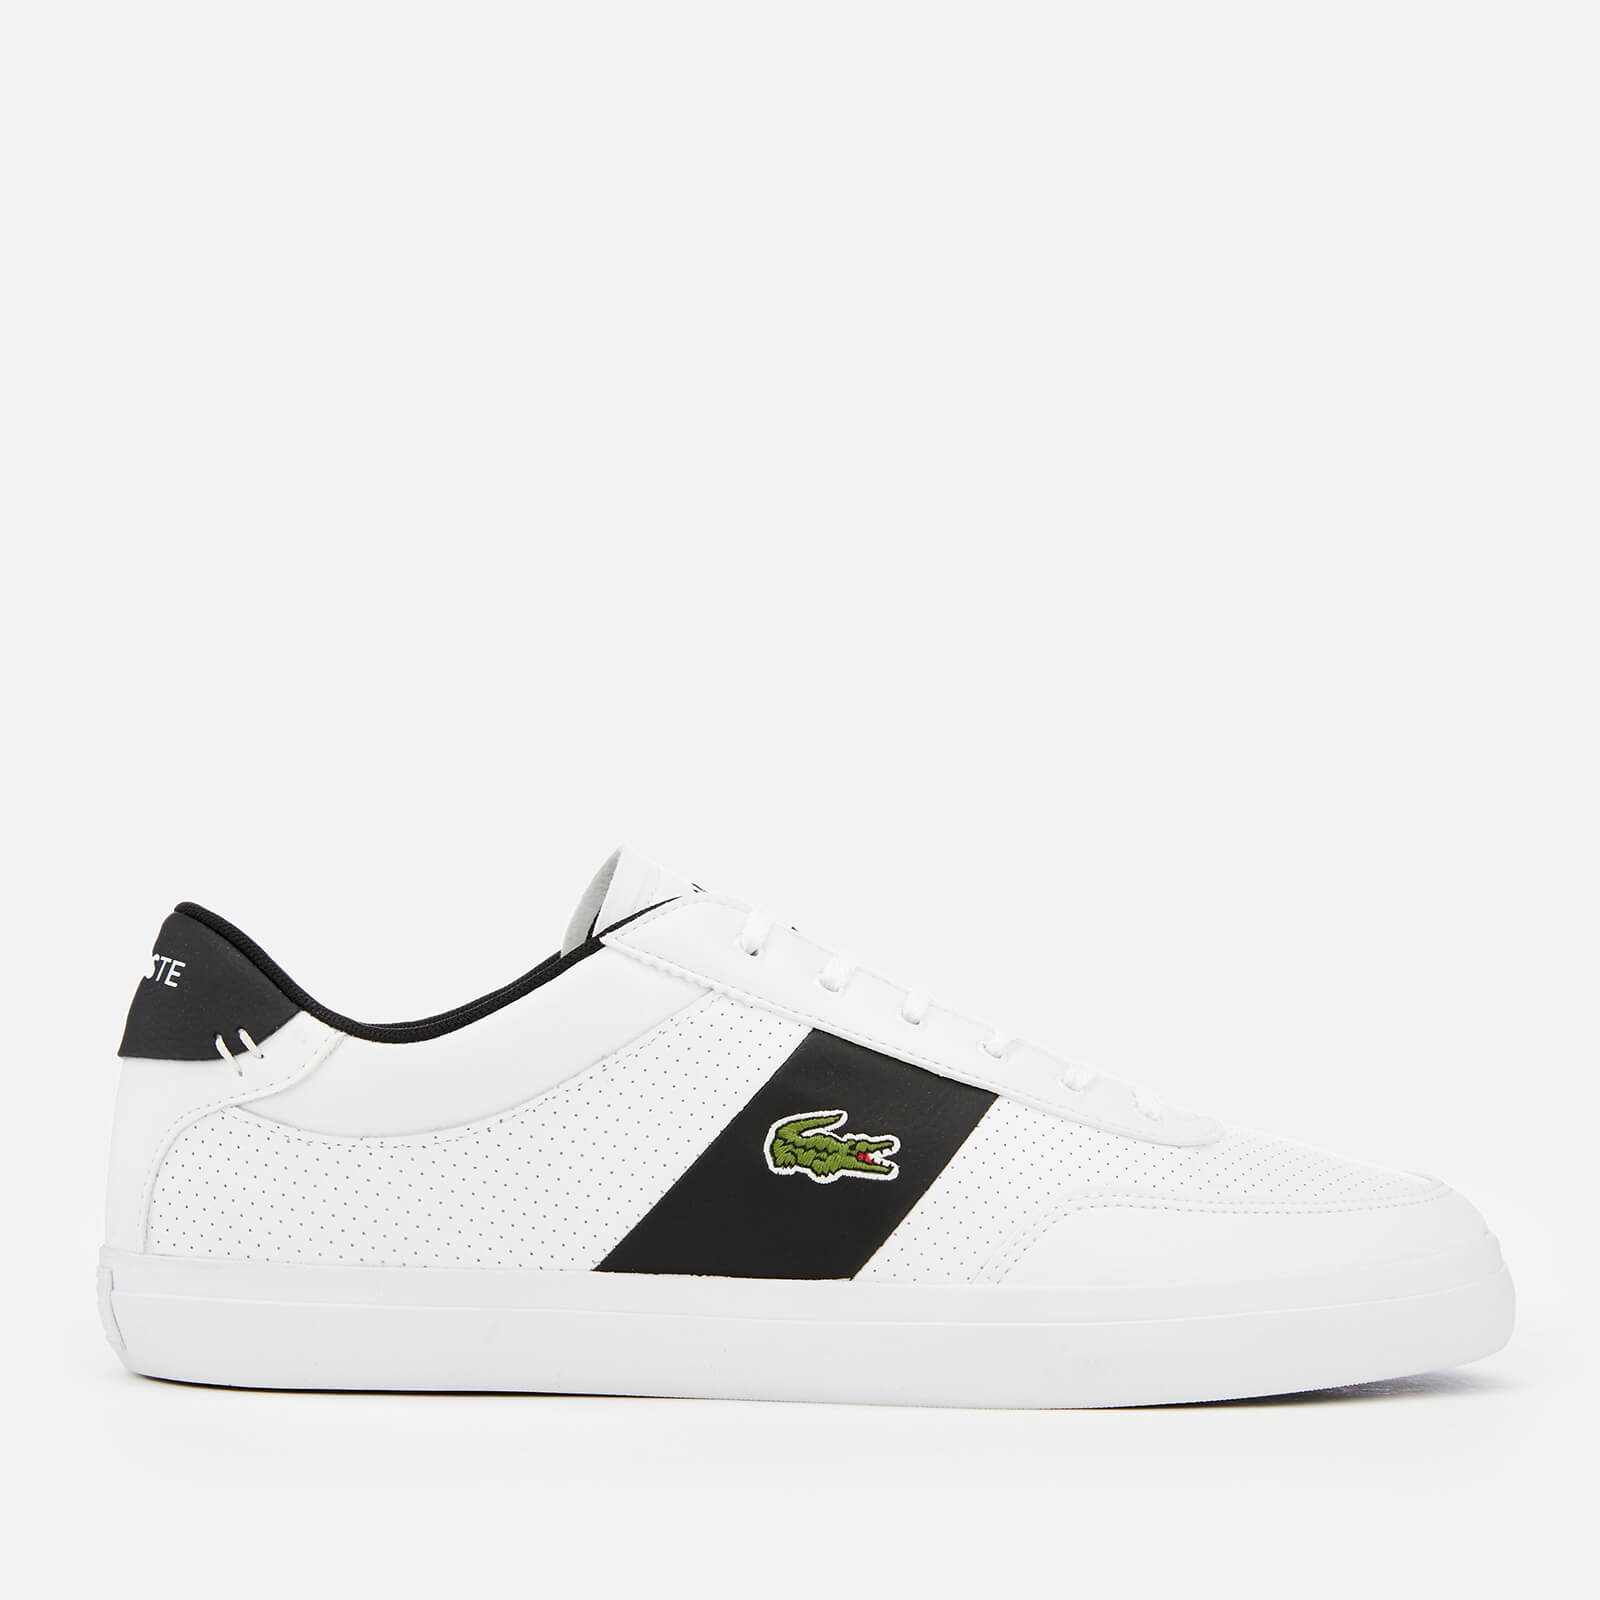 8a1cfdcd9 ... Lacoste Men s Court-Master 119 2 Perforated Leather Trainers - White  Black